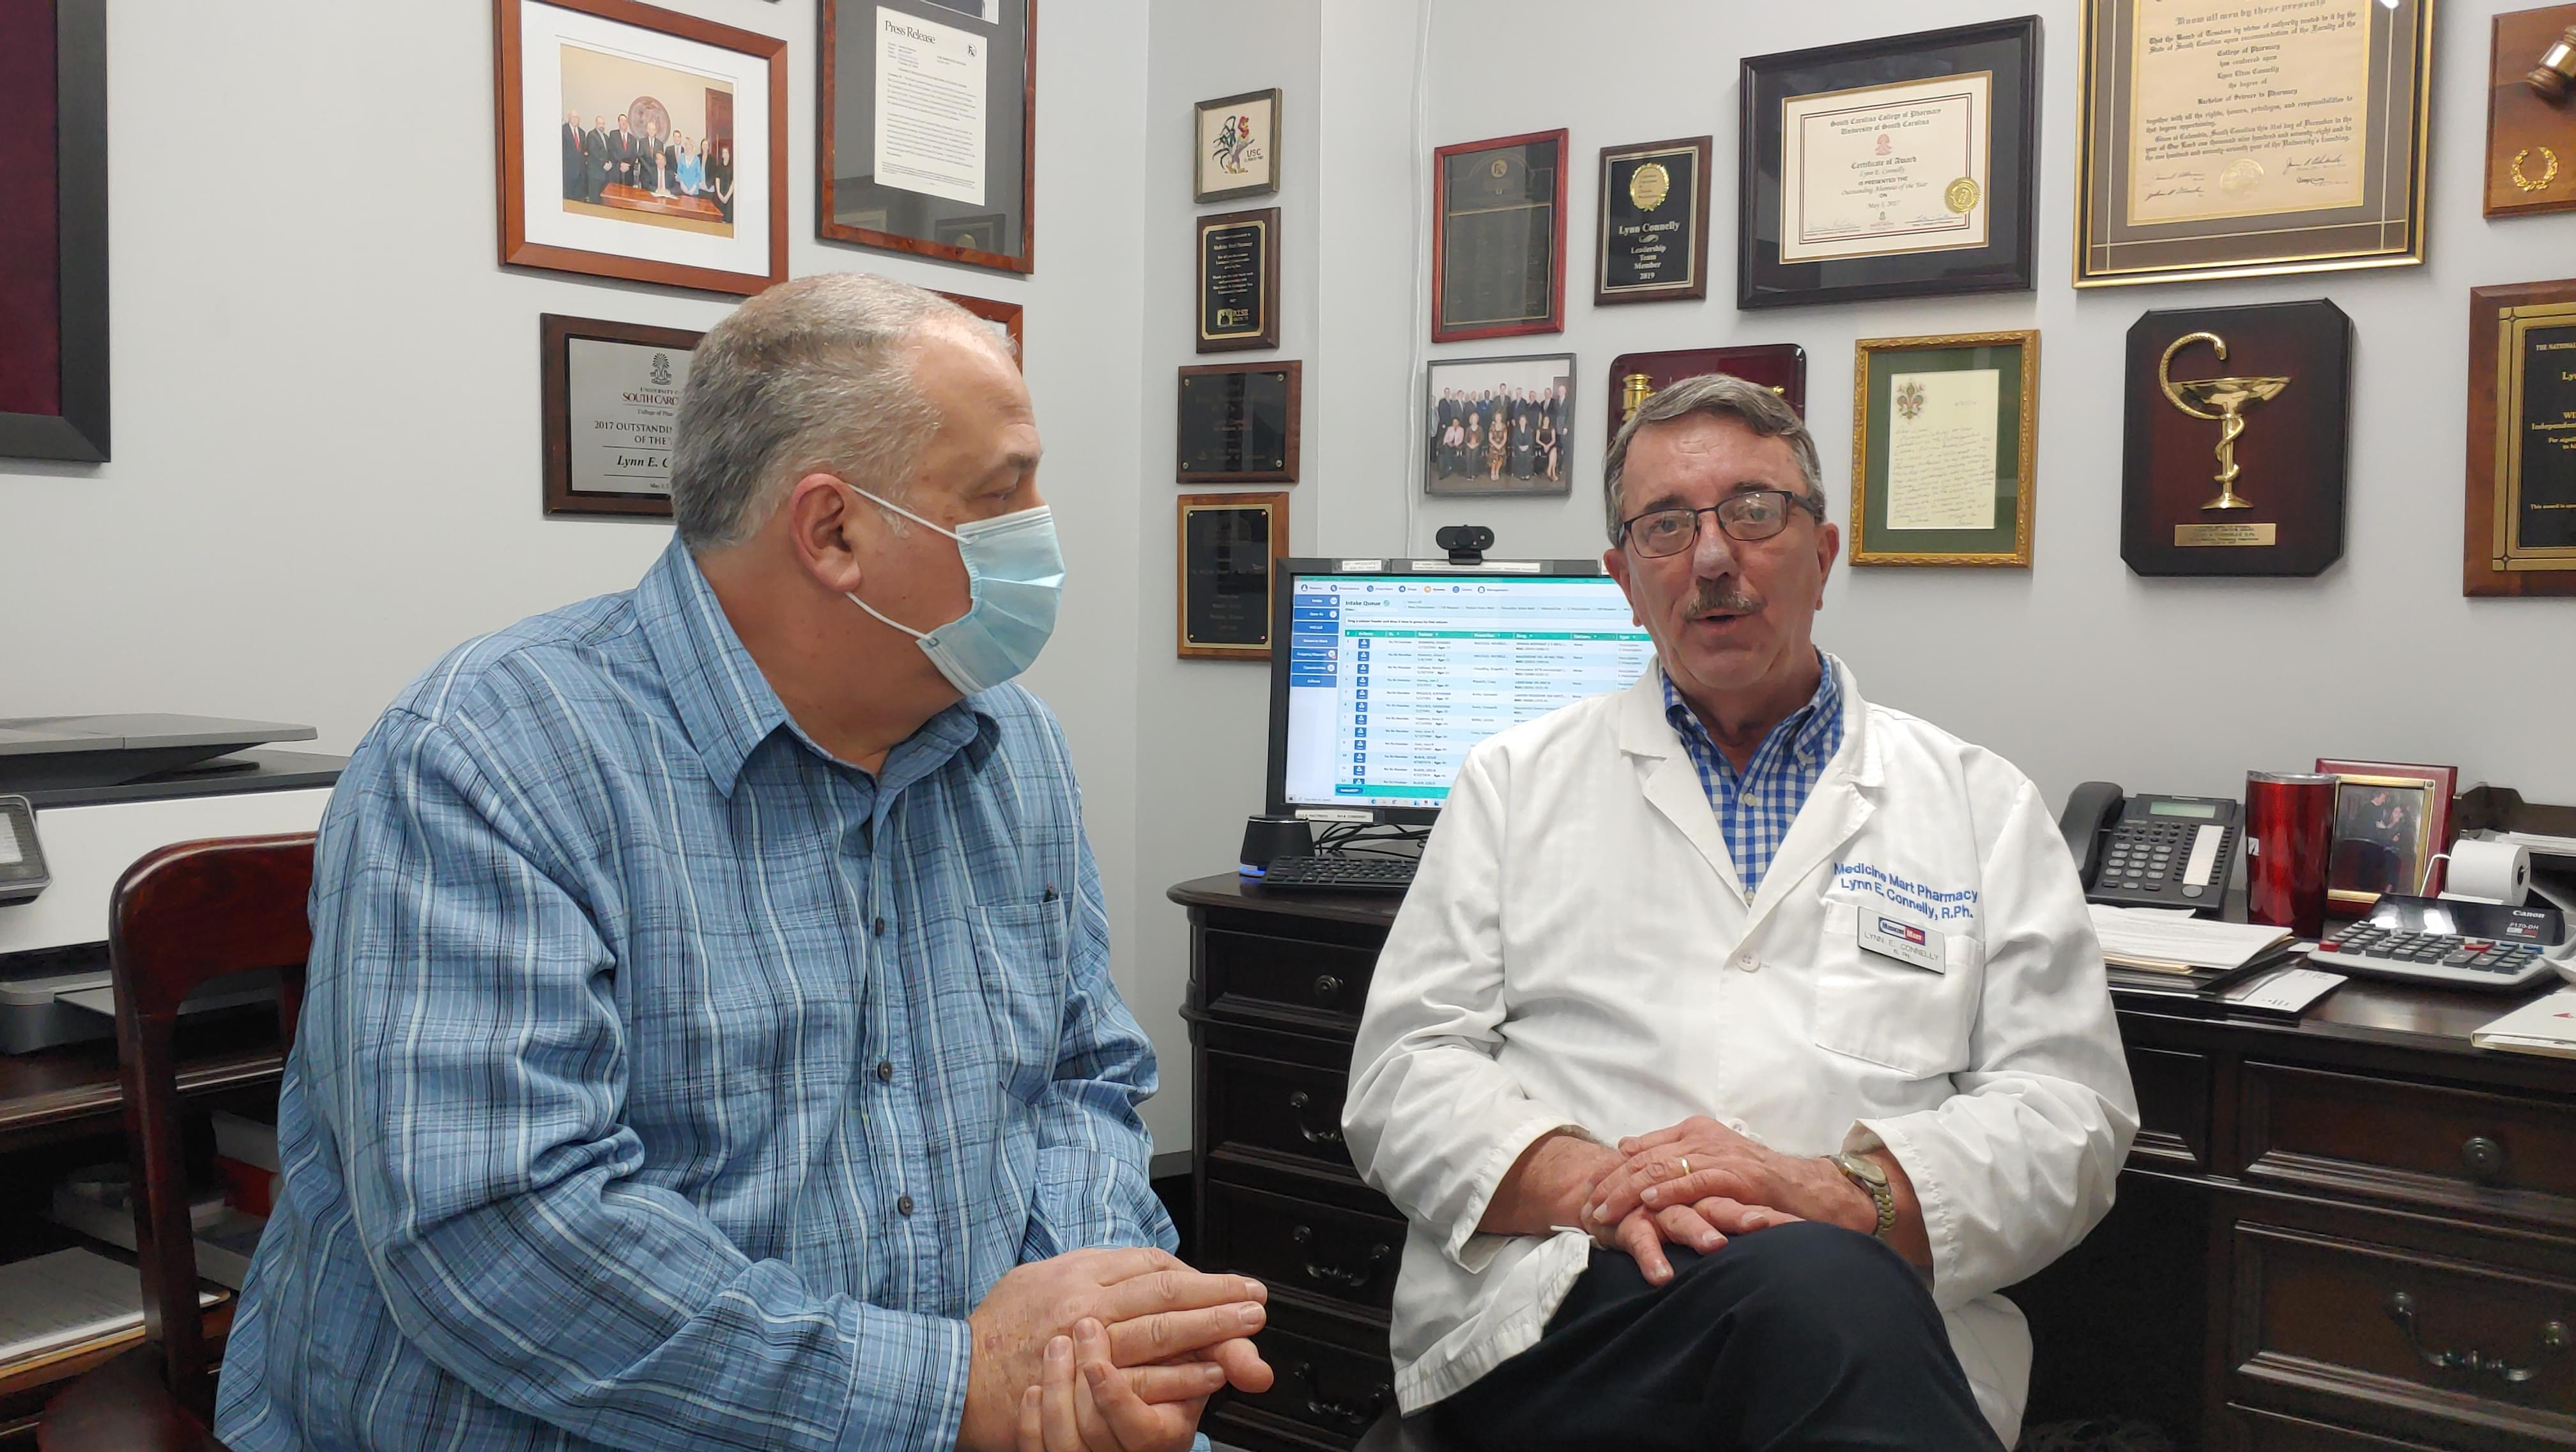 Steve McKay interviewed Lynn Connelly with Medicine Mart